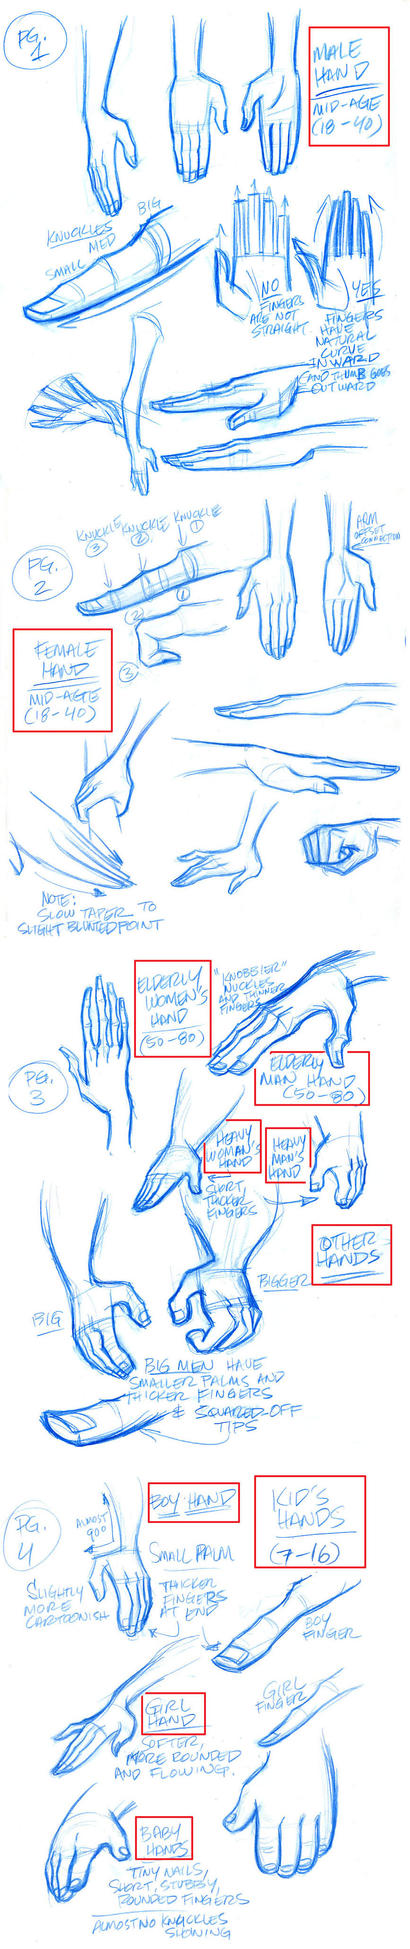 Stylized Hands model sheets by tombancroft